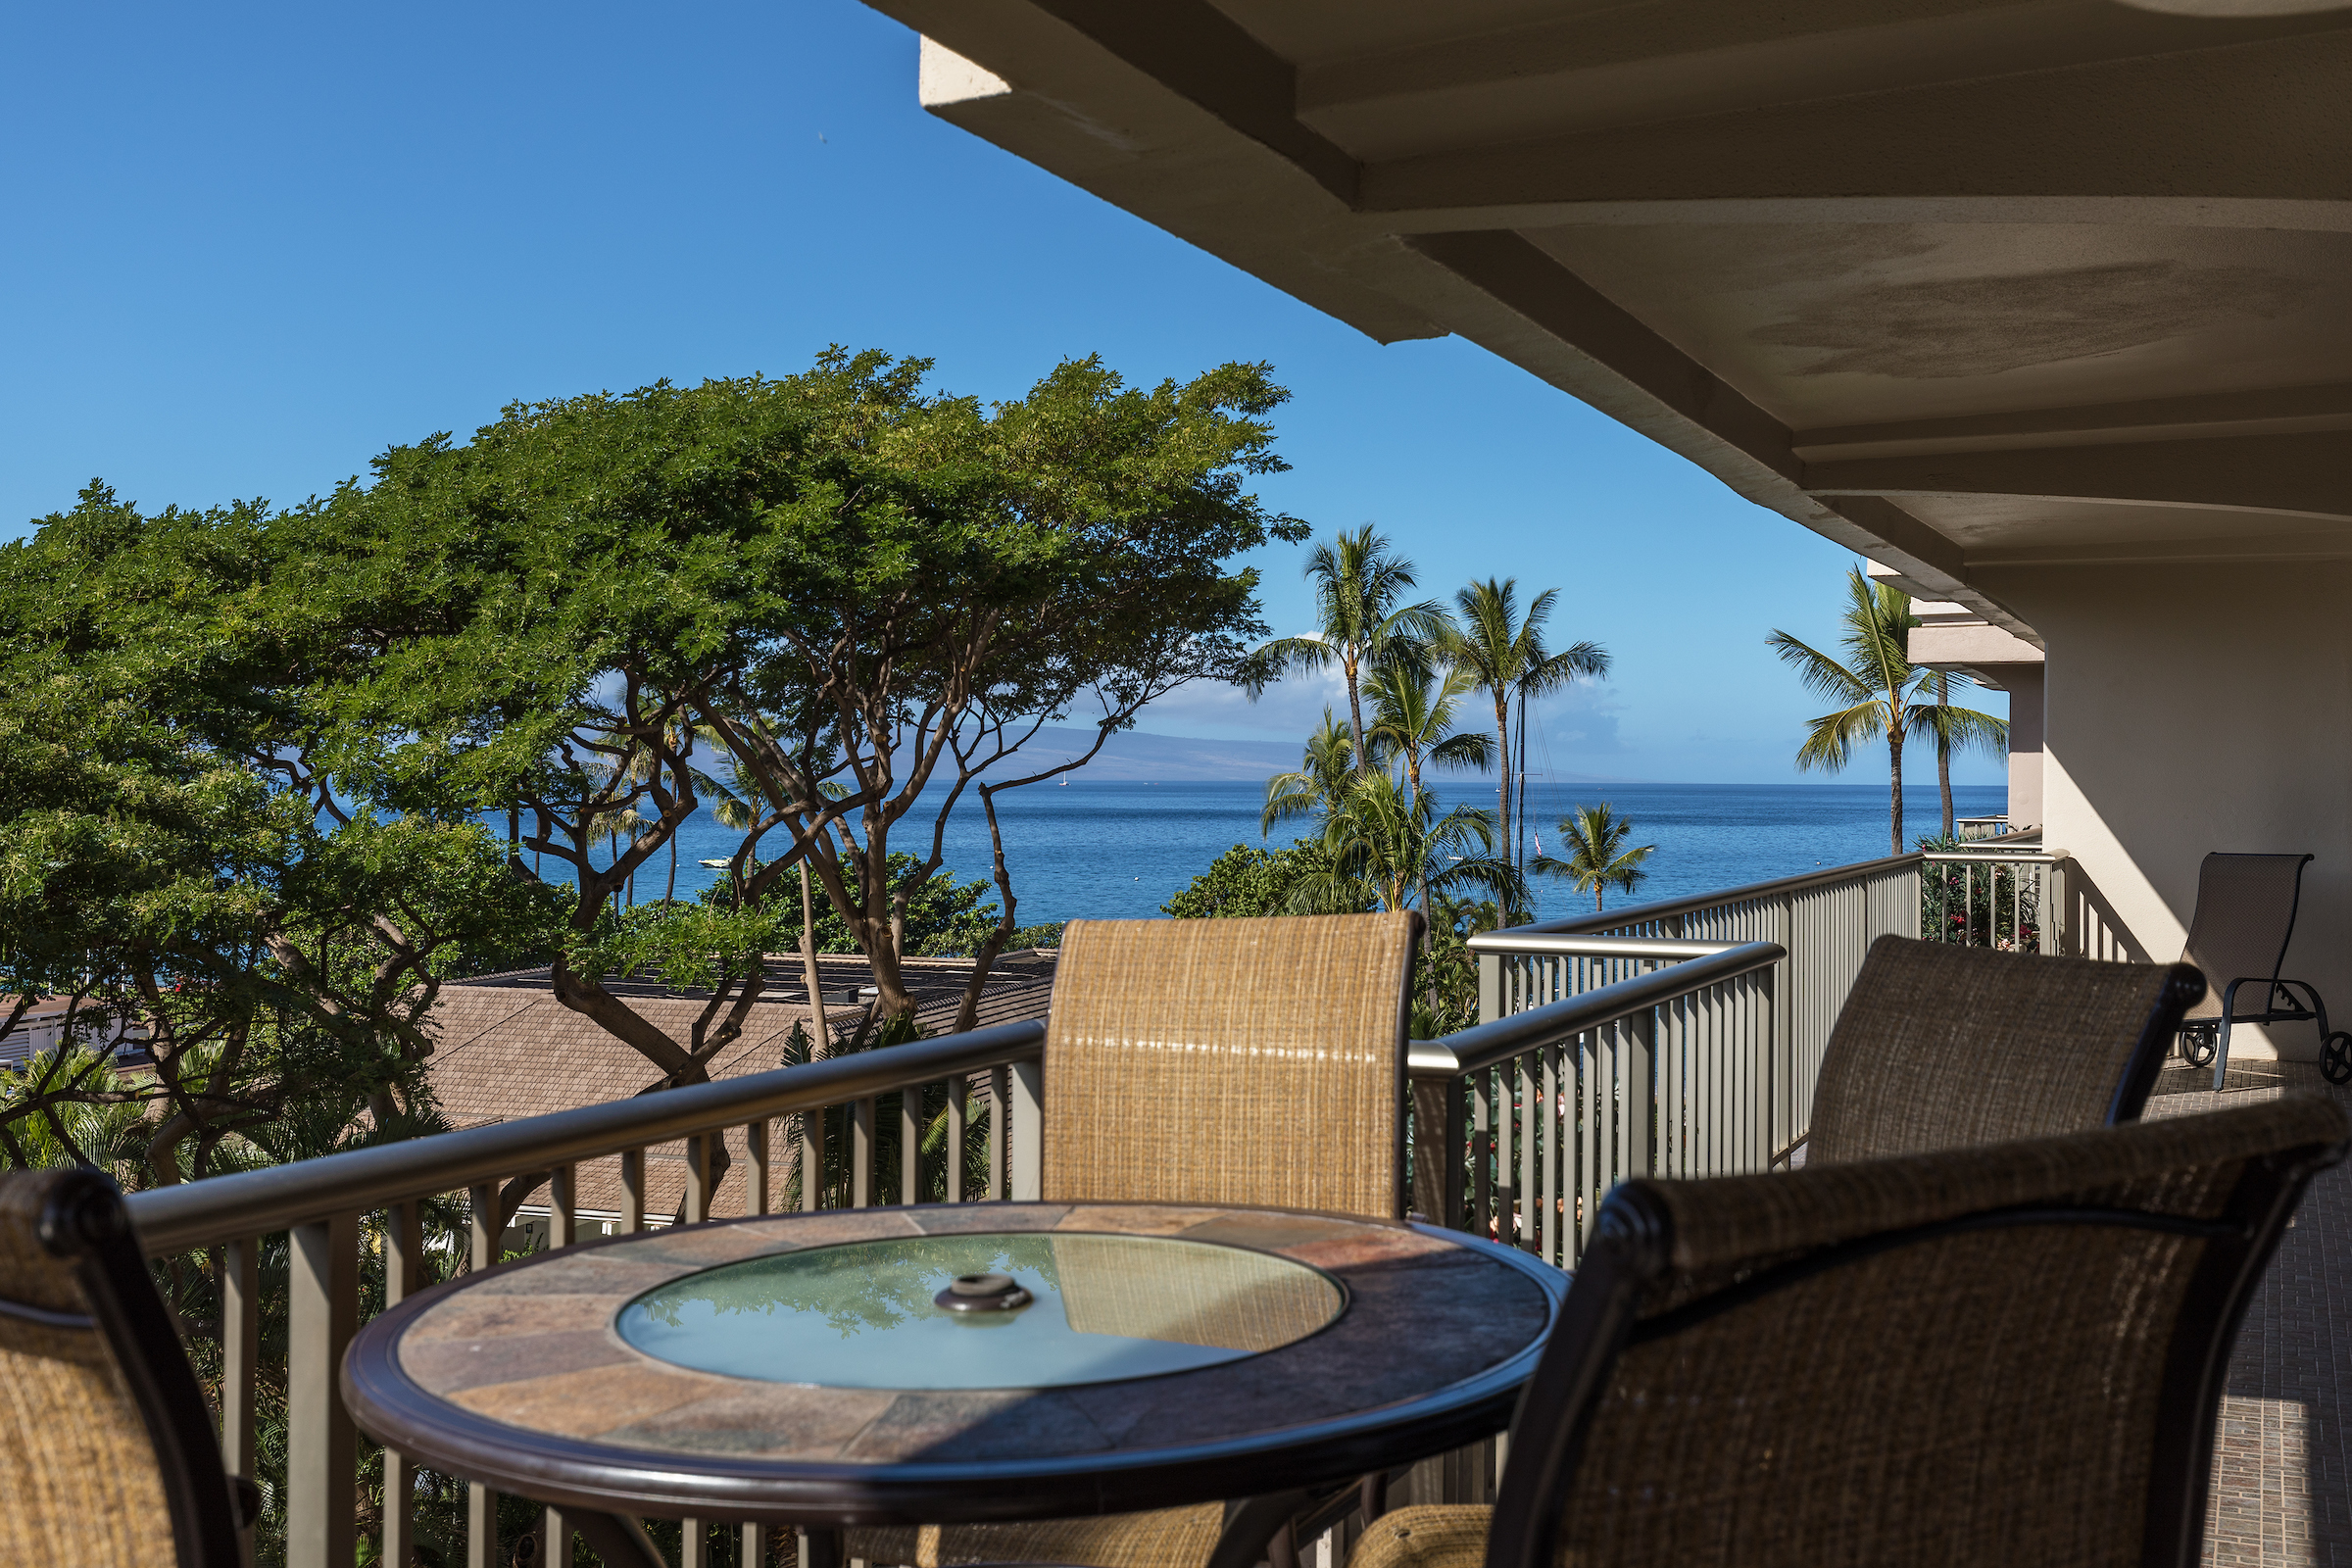 The-Whaler-on-Kaanapali-Beach-Maui-Condos-WH573-10.jpg